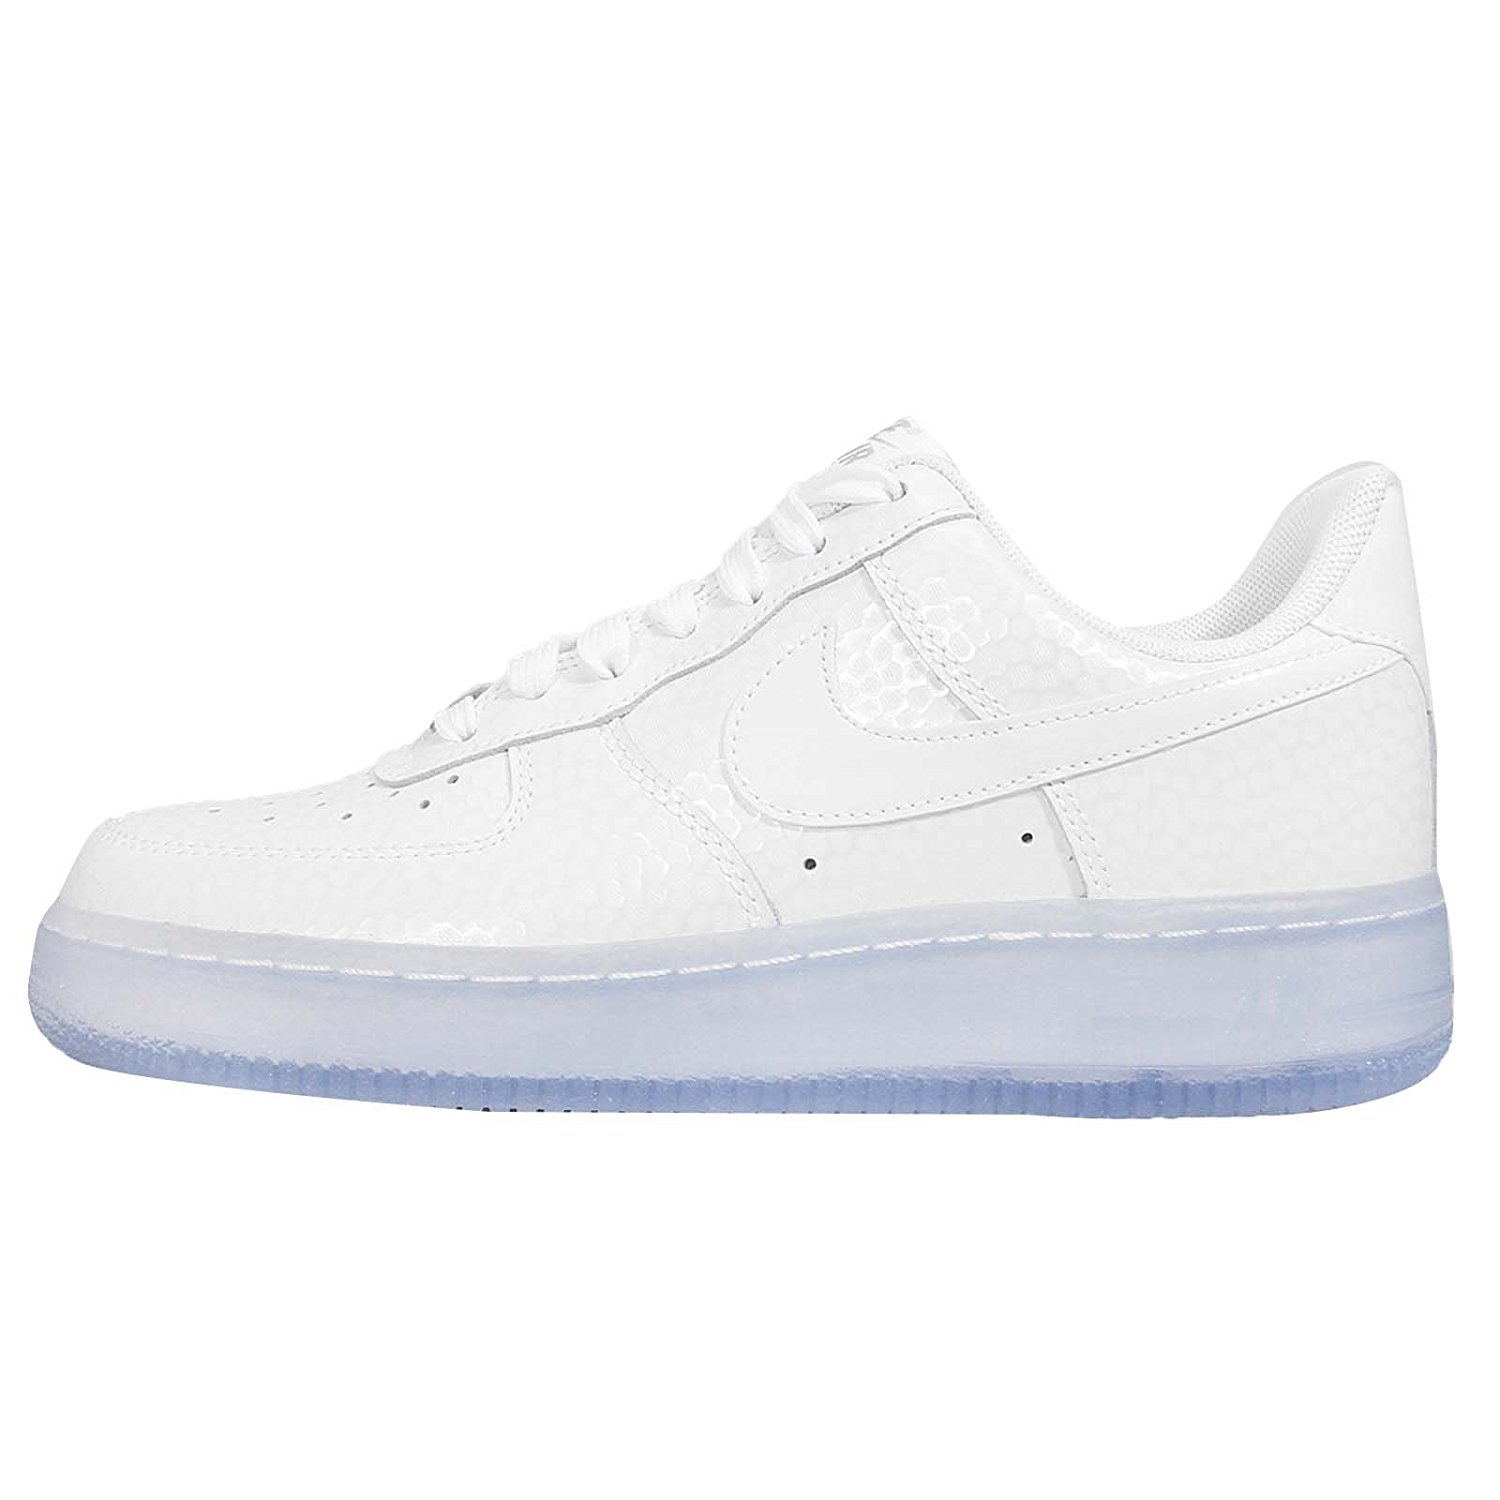 new product 8aaef 1eaeb Rhinestone air force one sneakers. Get Quotations · Nike Women s  Air Force   Sneakers